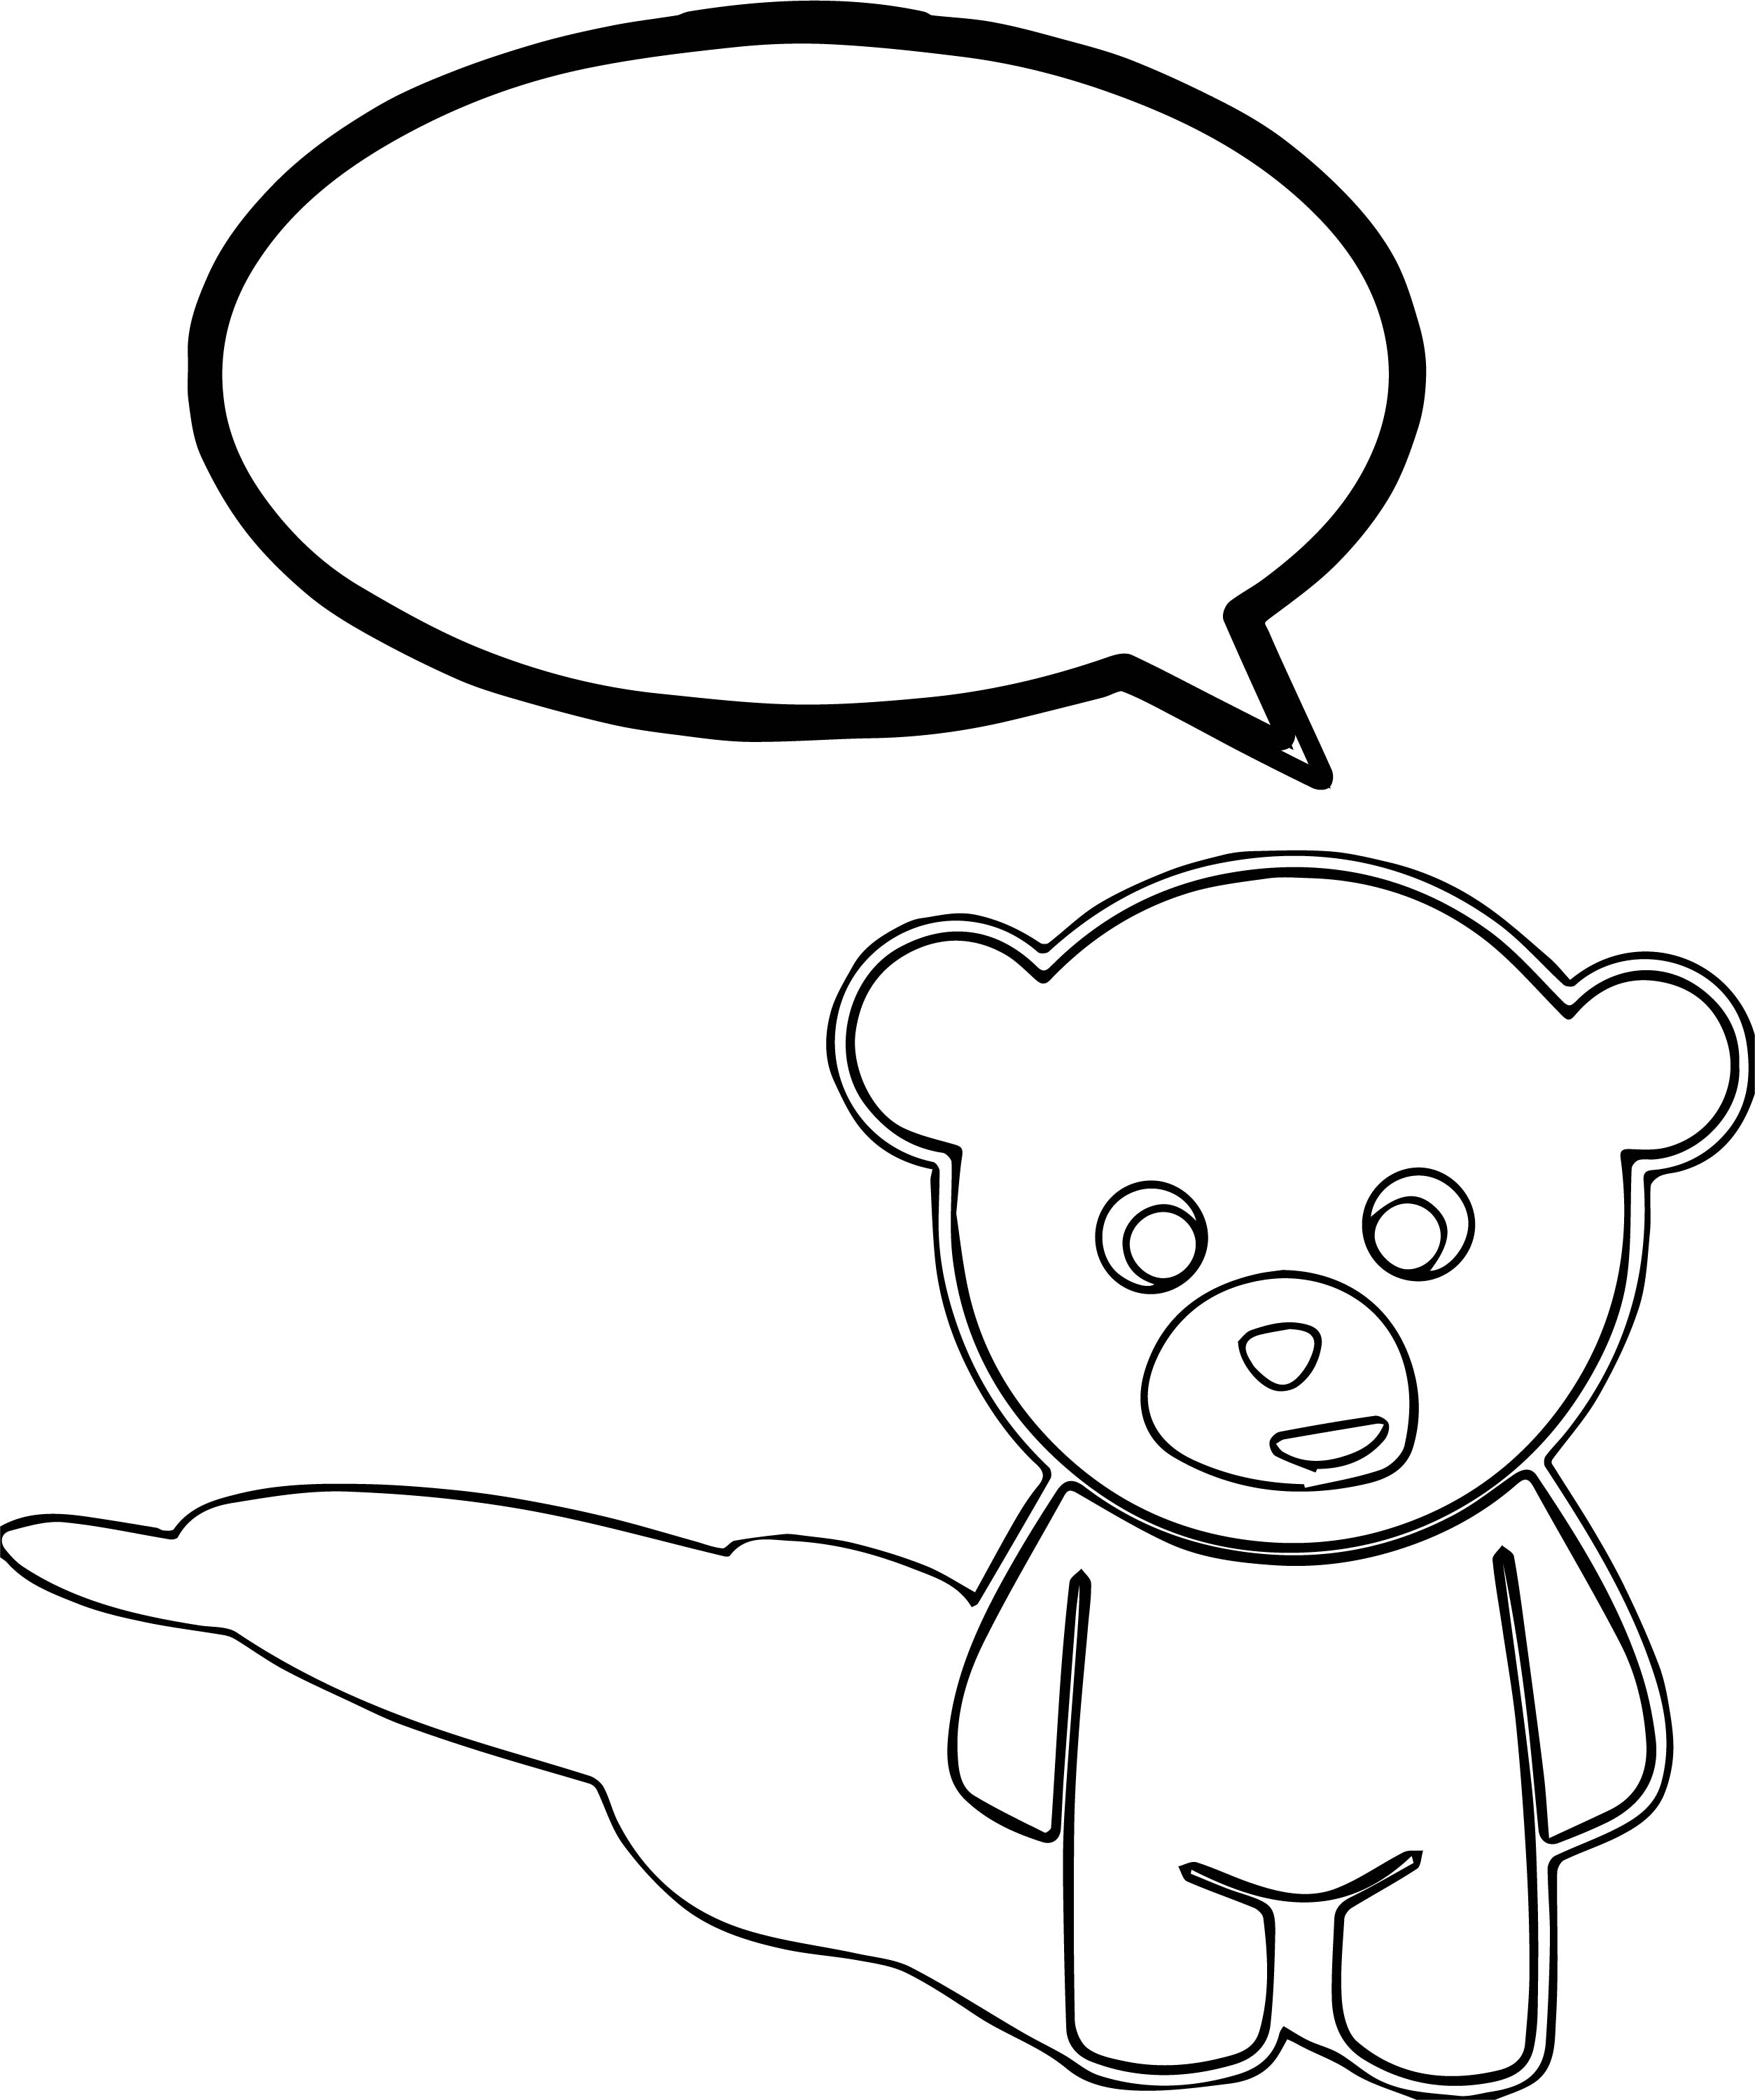 Bear Bubble Coloring Page